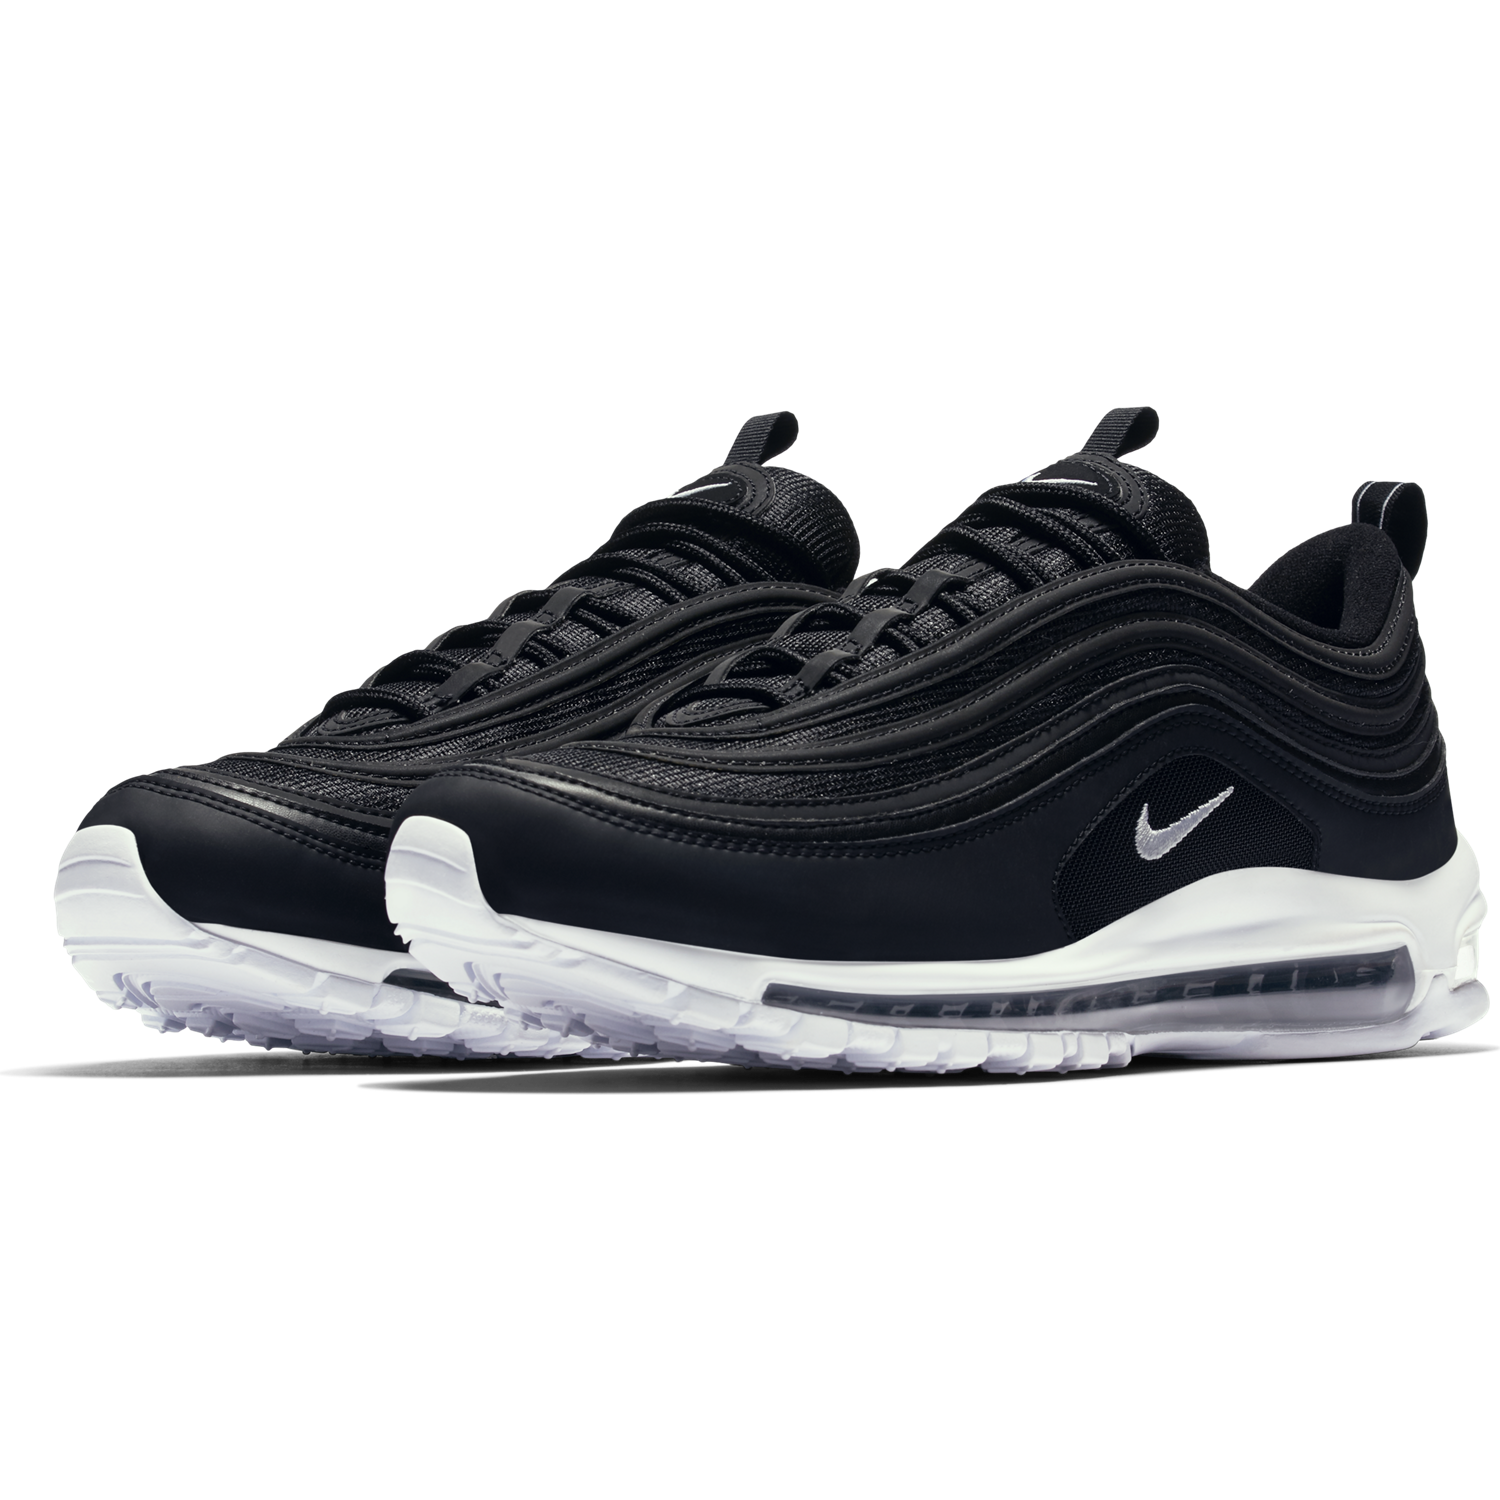 huge selection of a2131 d79ff ... BUTY MĘSKIE LIFESTYLE NIKE AIR MAX 97 CZARNE 921826-001 ...